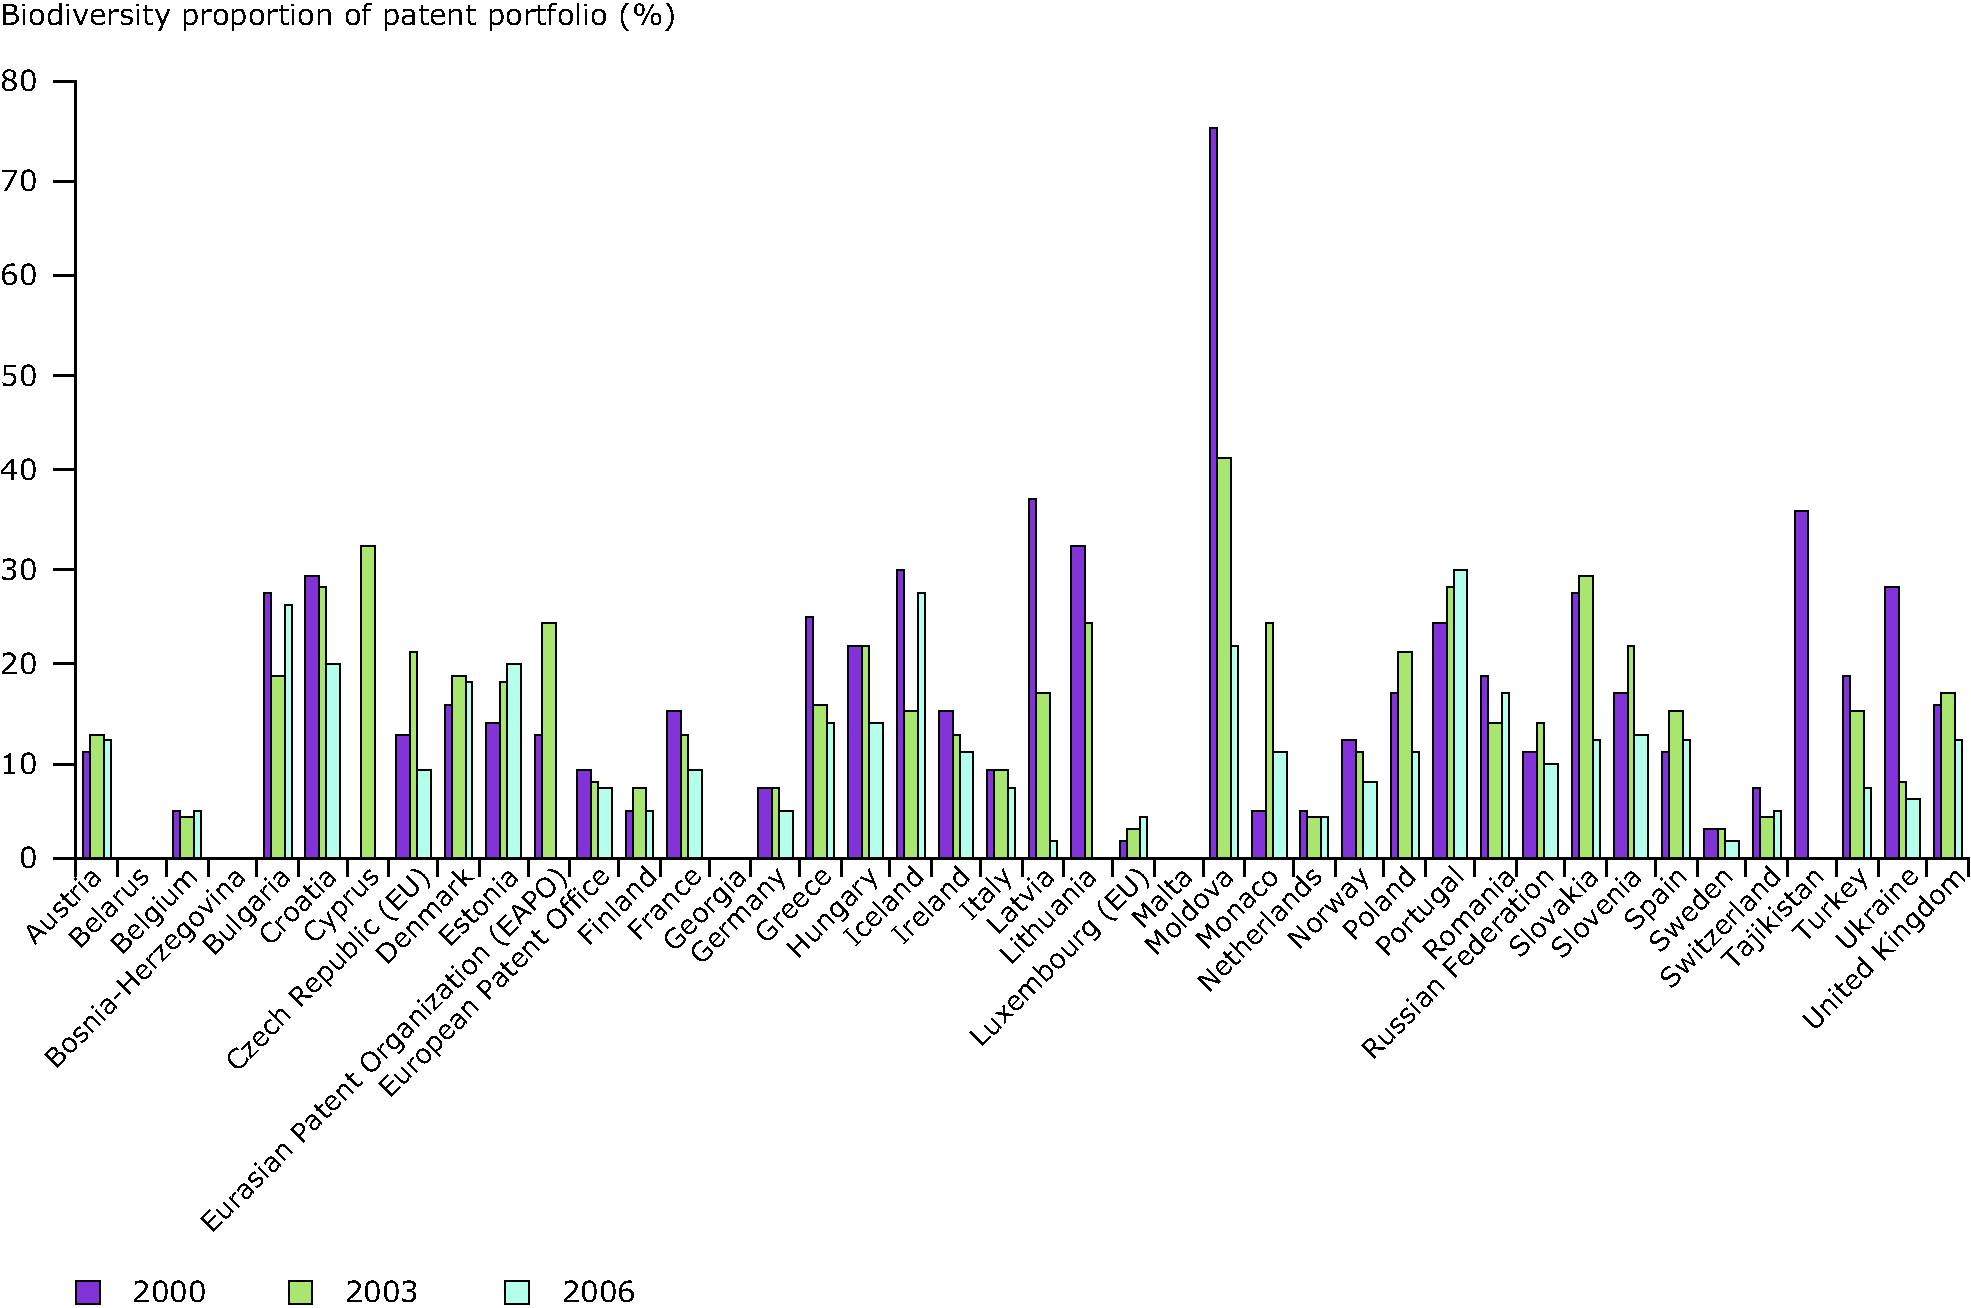 Biodiversity as a Share of European Patent Portfolios for Target Years